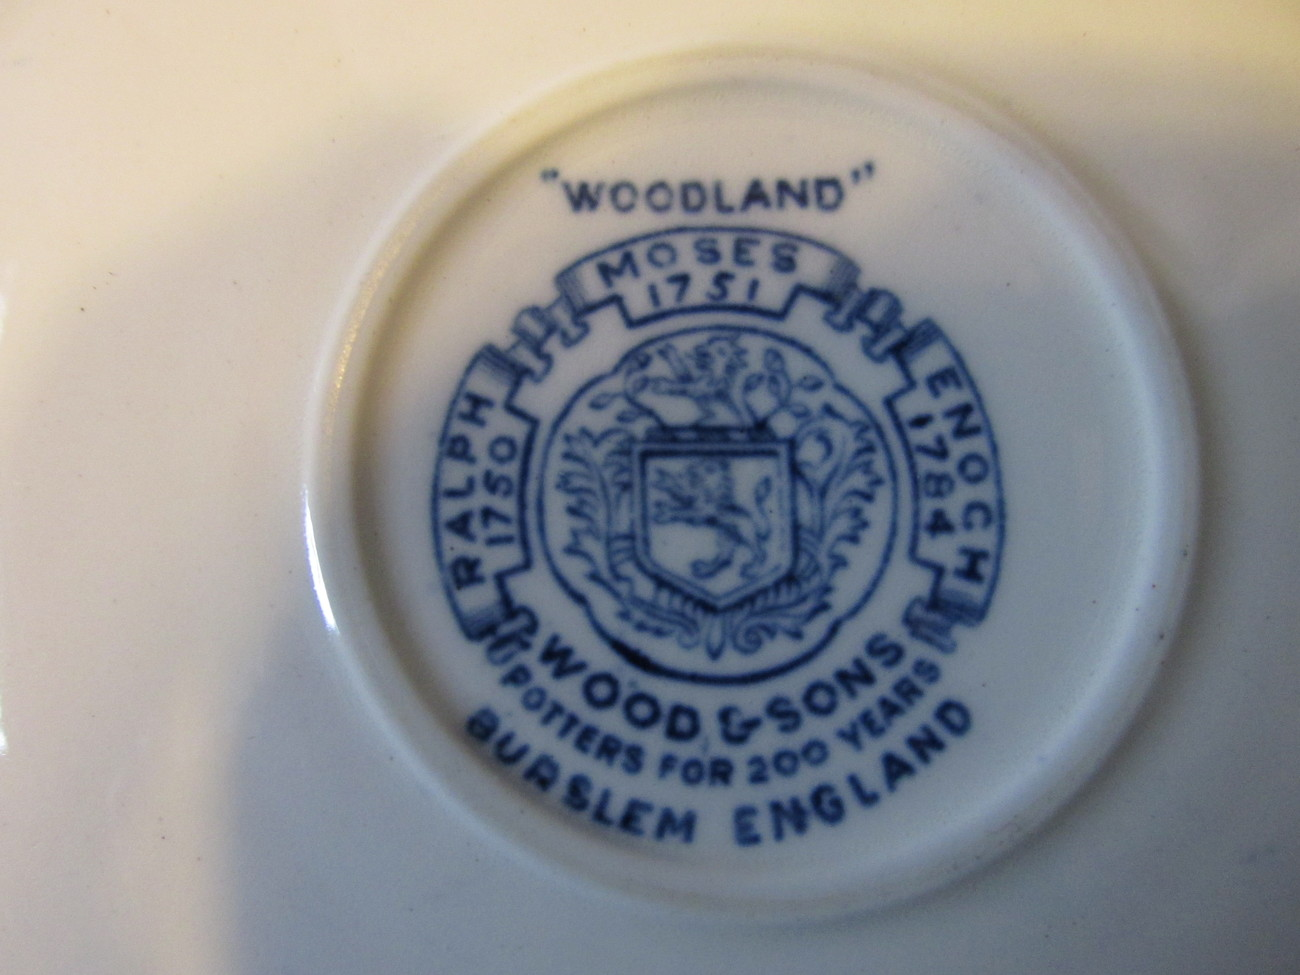 "Vintage Wood & Sons English Ironstone Cup and Saucer, ""Woodland"" Pattern - 1950s"